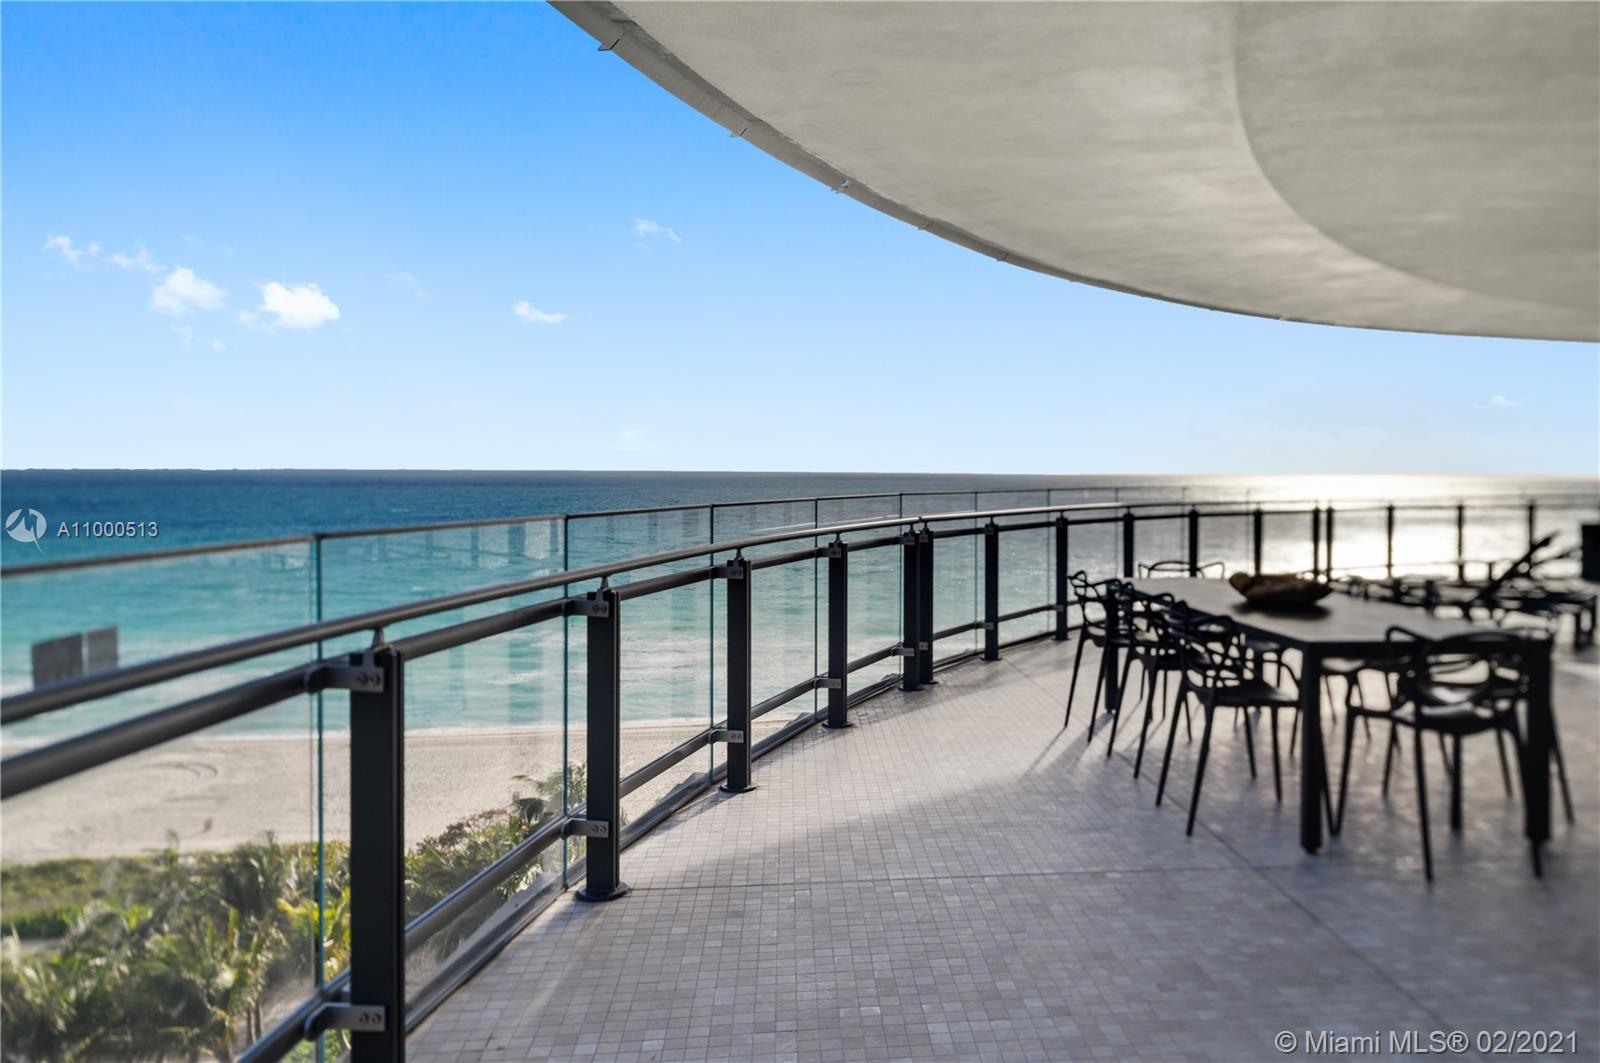 """Just completed,18 story building with just 70 luxurious residences,Eighty Seven Park designed by Pritzker Prizewinning architect Renzo Piano,features stunning ocean,city and park views.Enjoy the direct ocean views from this 3 bed,3.5 bath line 01 designed by Rena Dumas (RDAI):Wolf & subzero appliances,natural stone counter tops & back splashes,Zucchetti bathroom fixtures,vanities & accessories,floor to ceiling windows,10""""ceilings and a 1,715 sf wrap around terrace.Eighty Seven features both indoor & outdoor amenities which include:Soul Center Spa,Enoteca,Library,Apple (SMART) Center,Private Garden,Fugo Bar,Botanical Exhibition,Pool & Cabanas.Located at the gateway to Miami Beach,close to Bal Harbour shopping,Eighty Seven Park provides unobstructed views of the park and ocean.Easy to show."""